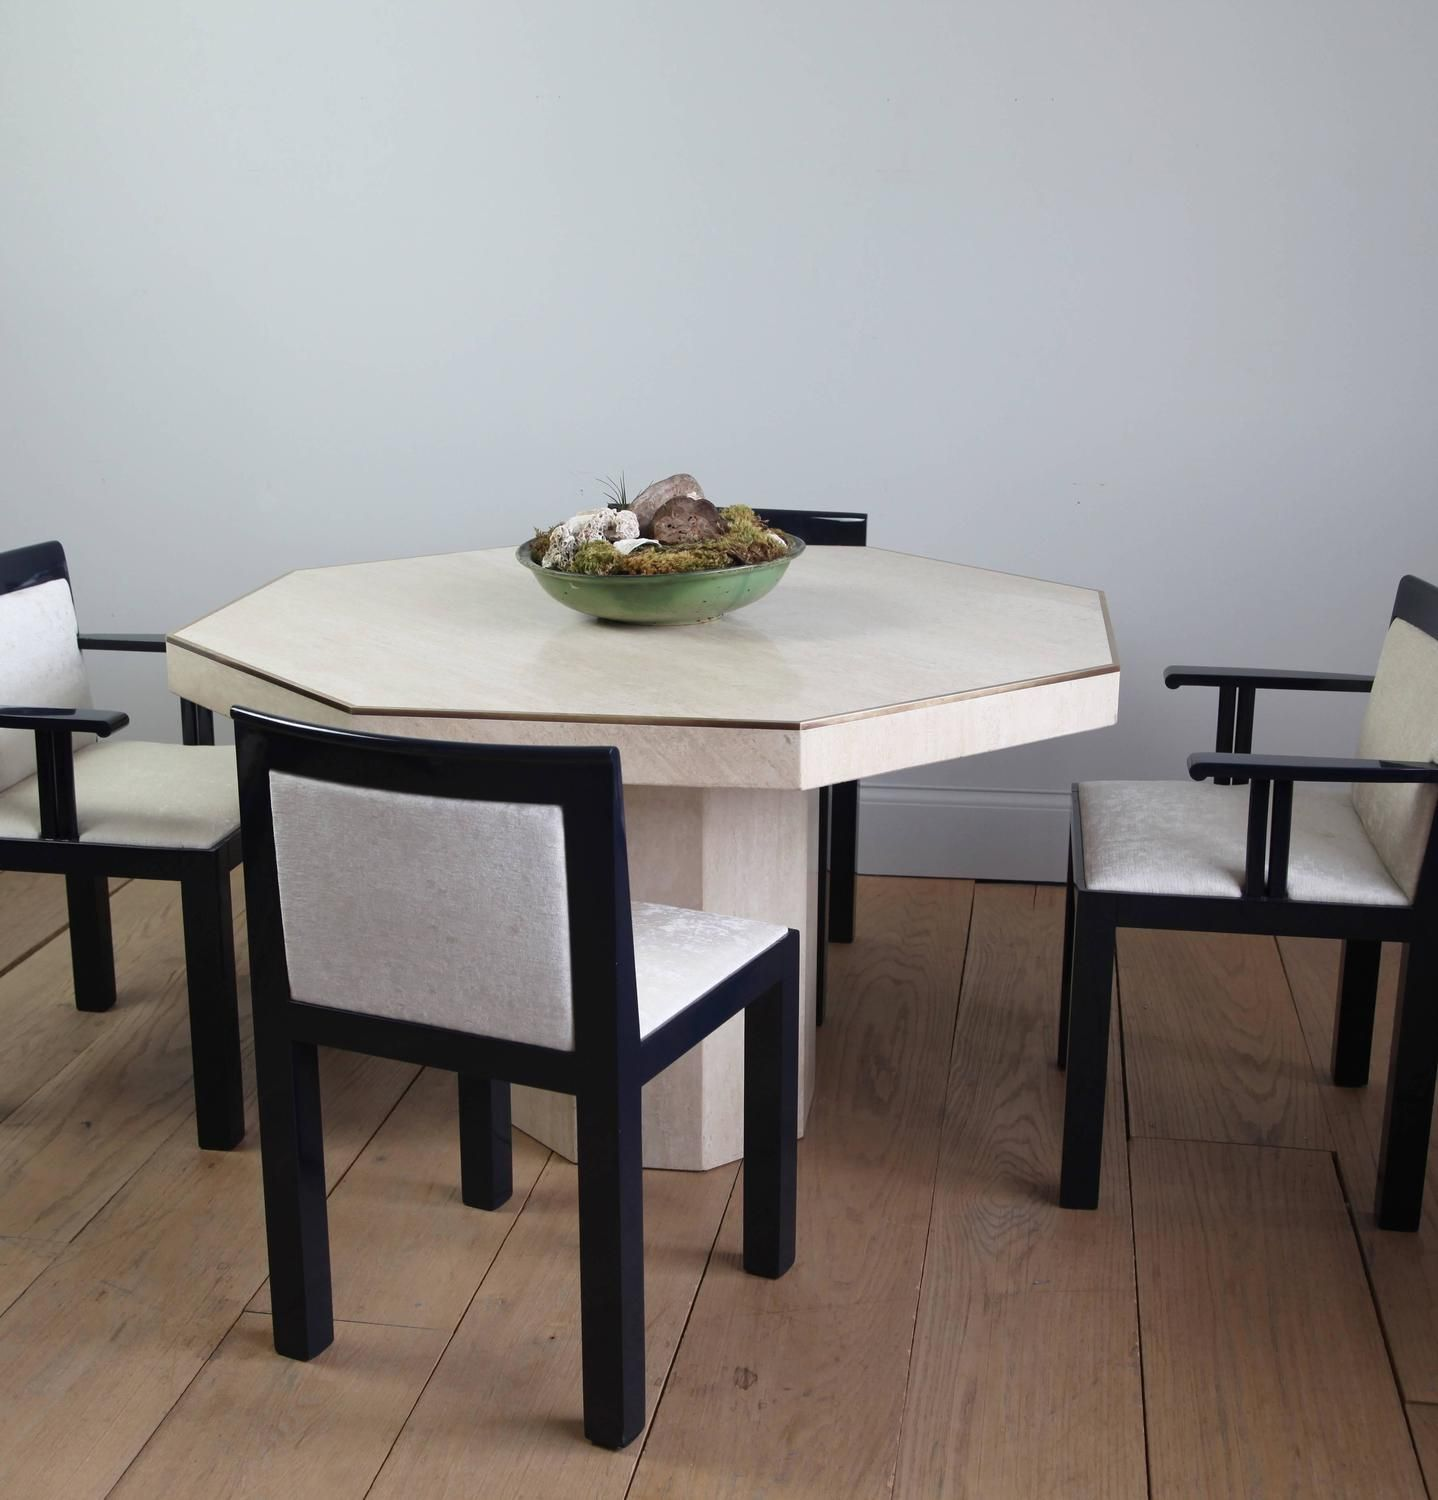 Octagonal Travertine Italian Dining Table 3